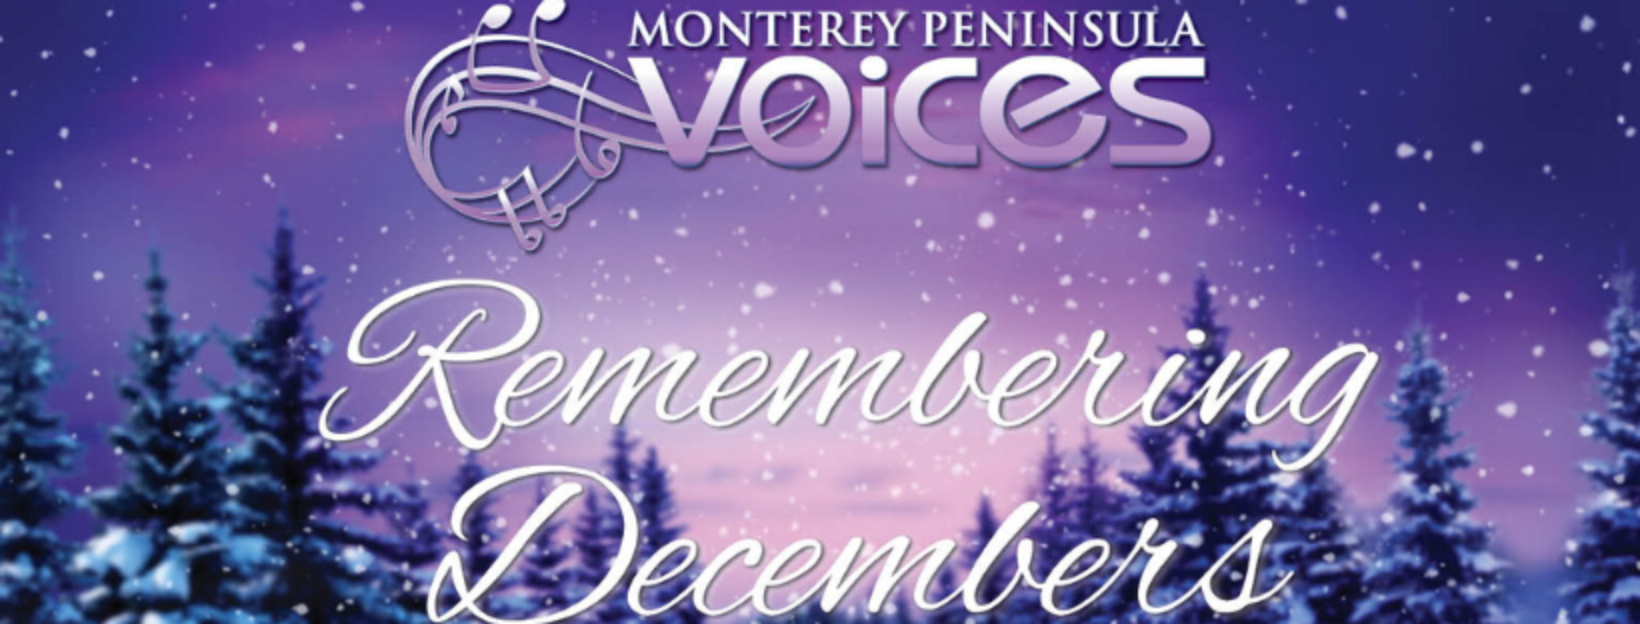 MPV 2019 Holiday Concert: Remembering Decembers - HD VIDEO